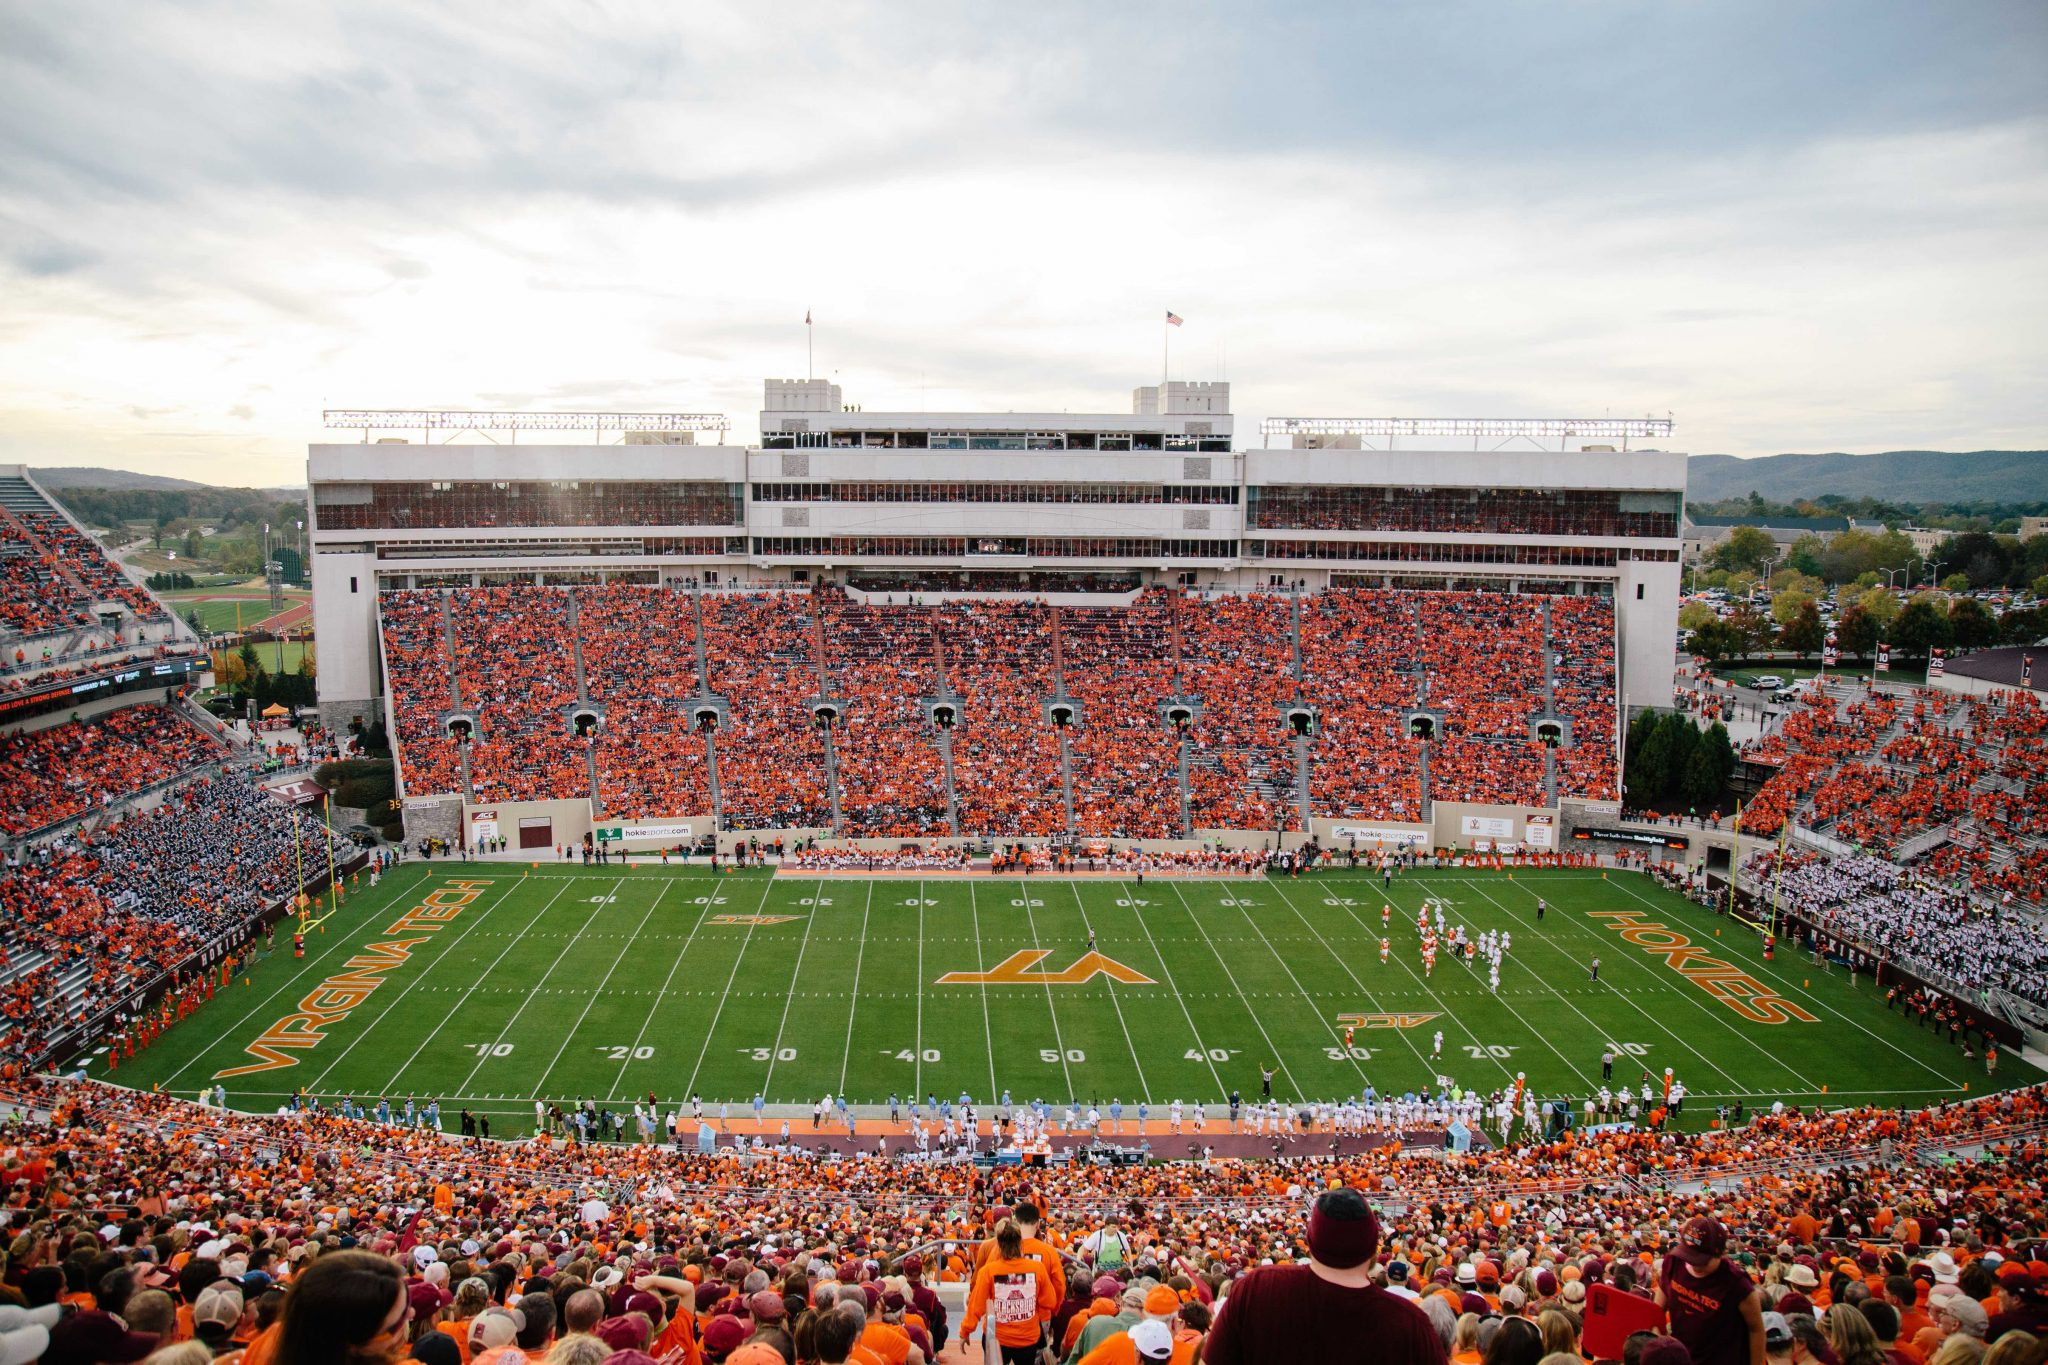 Photos of the crowd at Lane Stadium, the largest stadium in va, from the 2017 Homecoming Game against the University of North Carolina Tarheels.